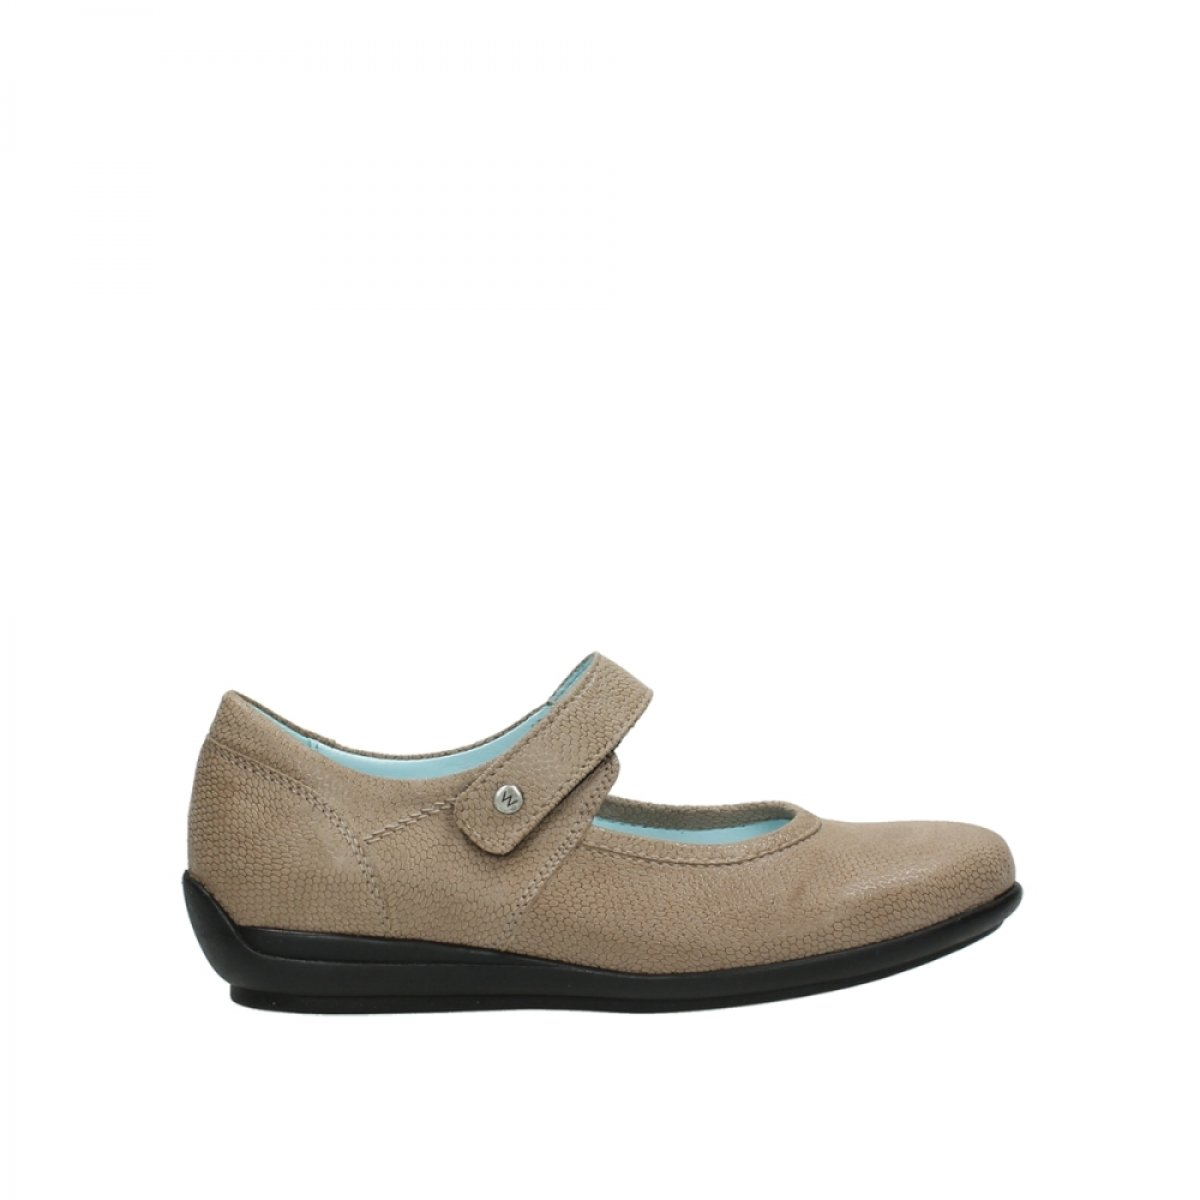 Wolky Comfort Mary Janes Noble B079RJ5WC2 42 M EU|20150 Taupe Leather